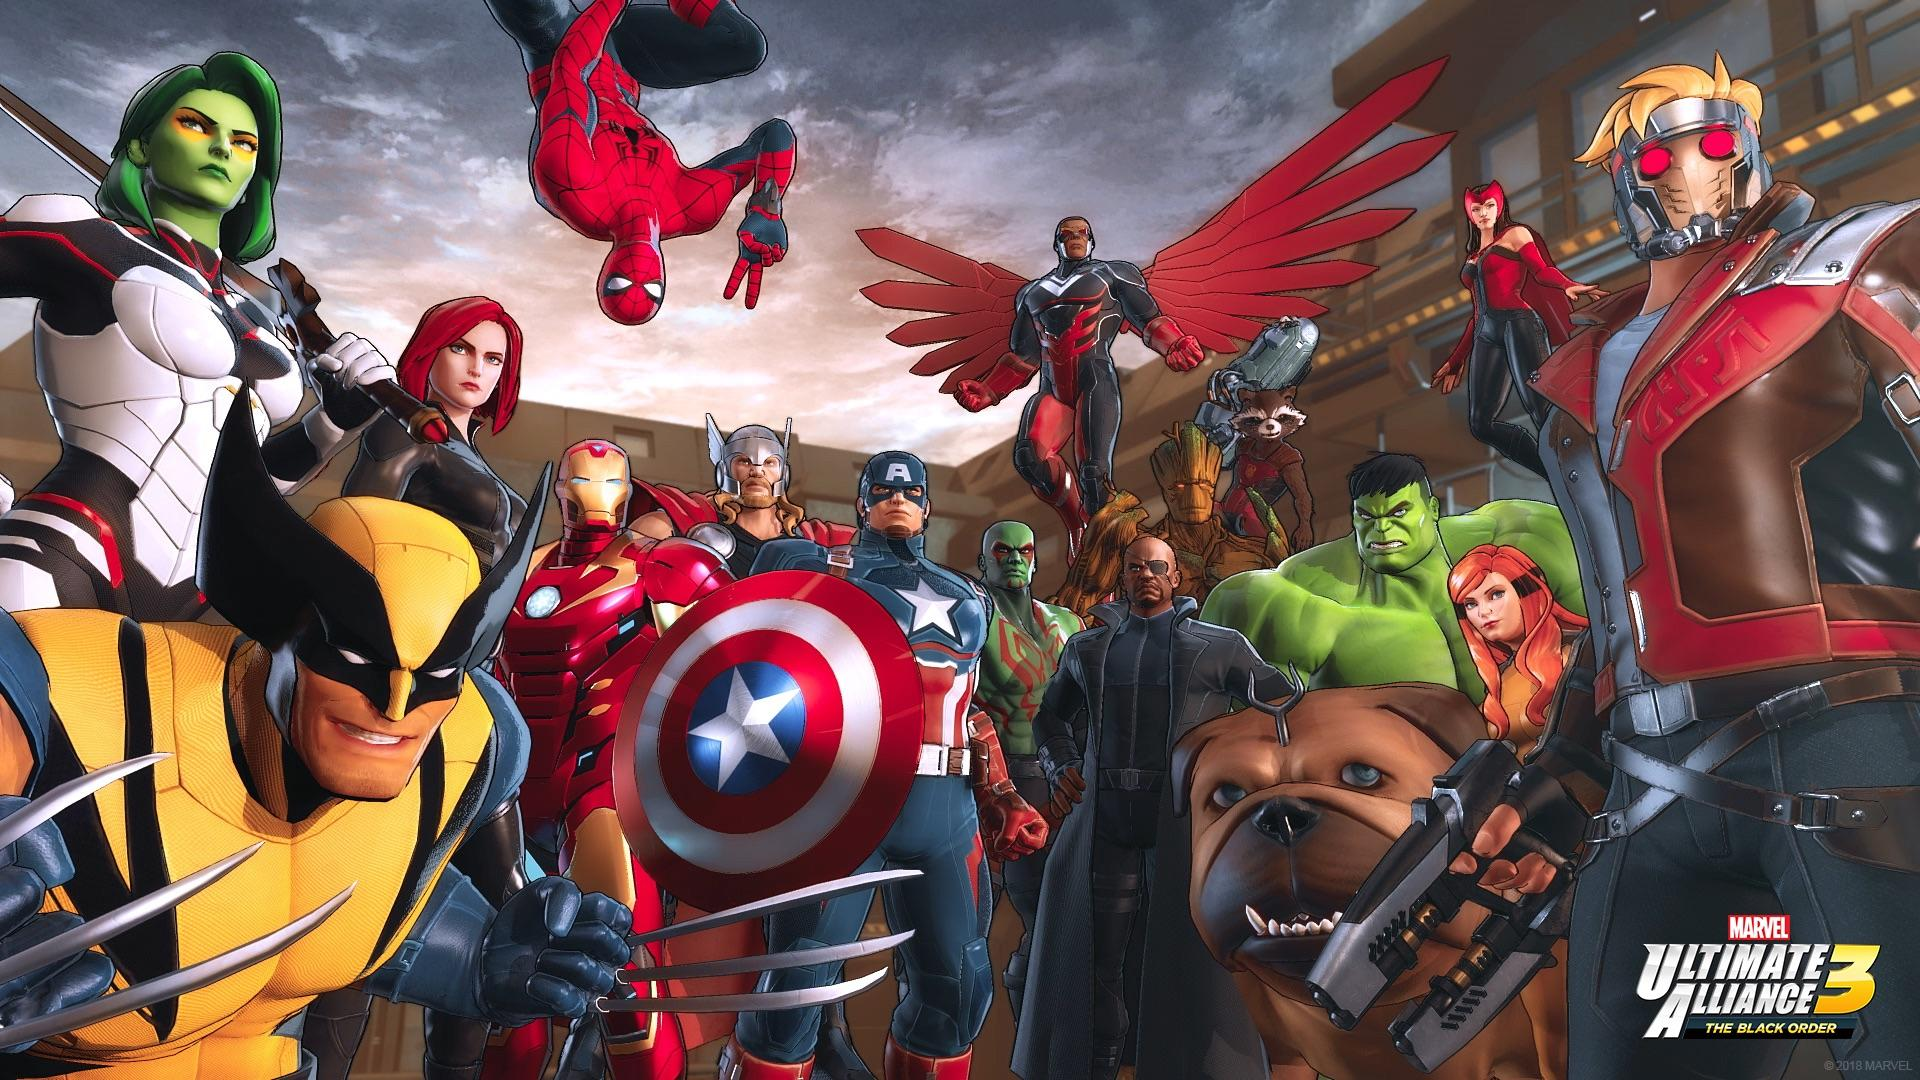 Marvel Ultimate Alliance 3 is a Nintendo Switch exclusive, coming 2019